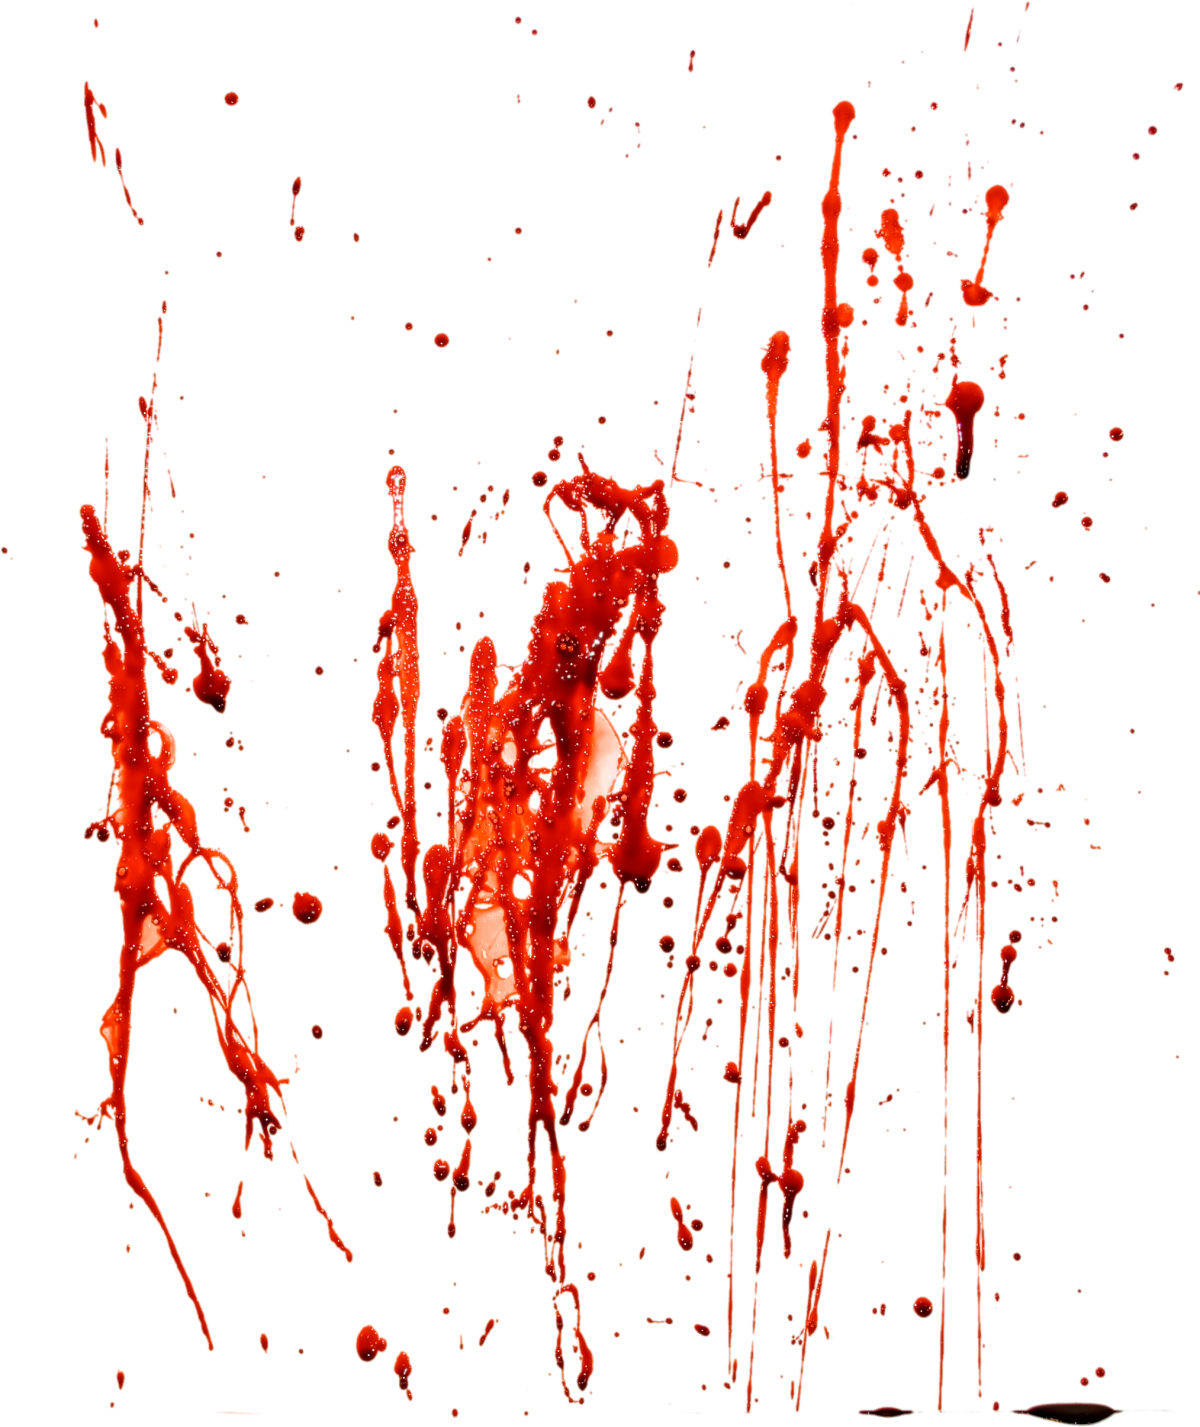 how to make a blood splatter effect on paper